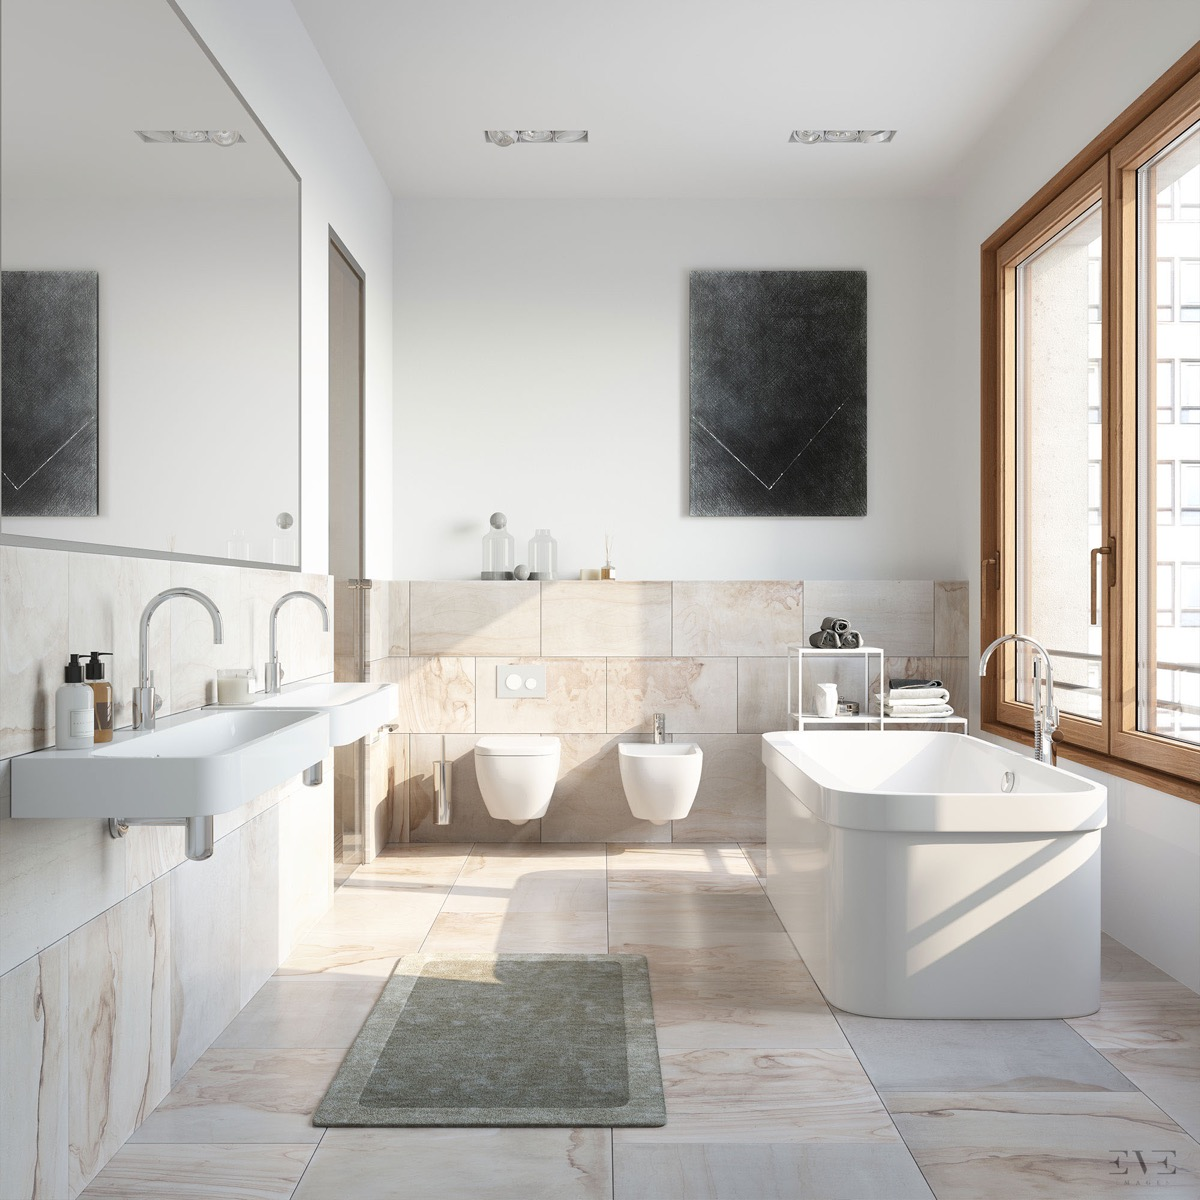 Minimalist Bathroom Decor: 40 Modern Minimalist Style Bathrooms